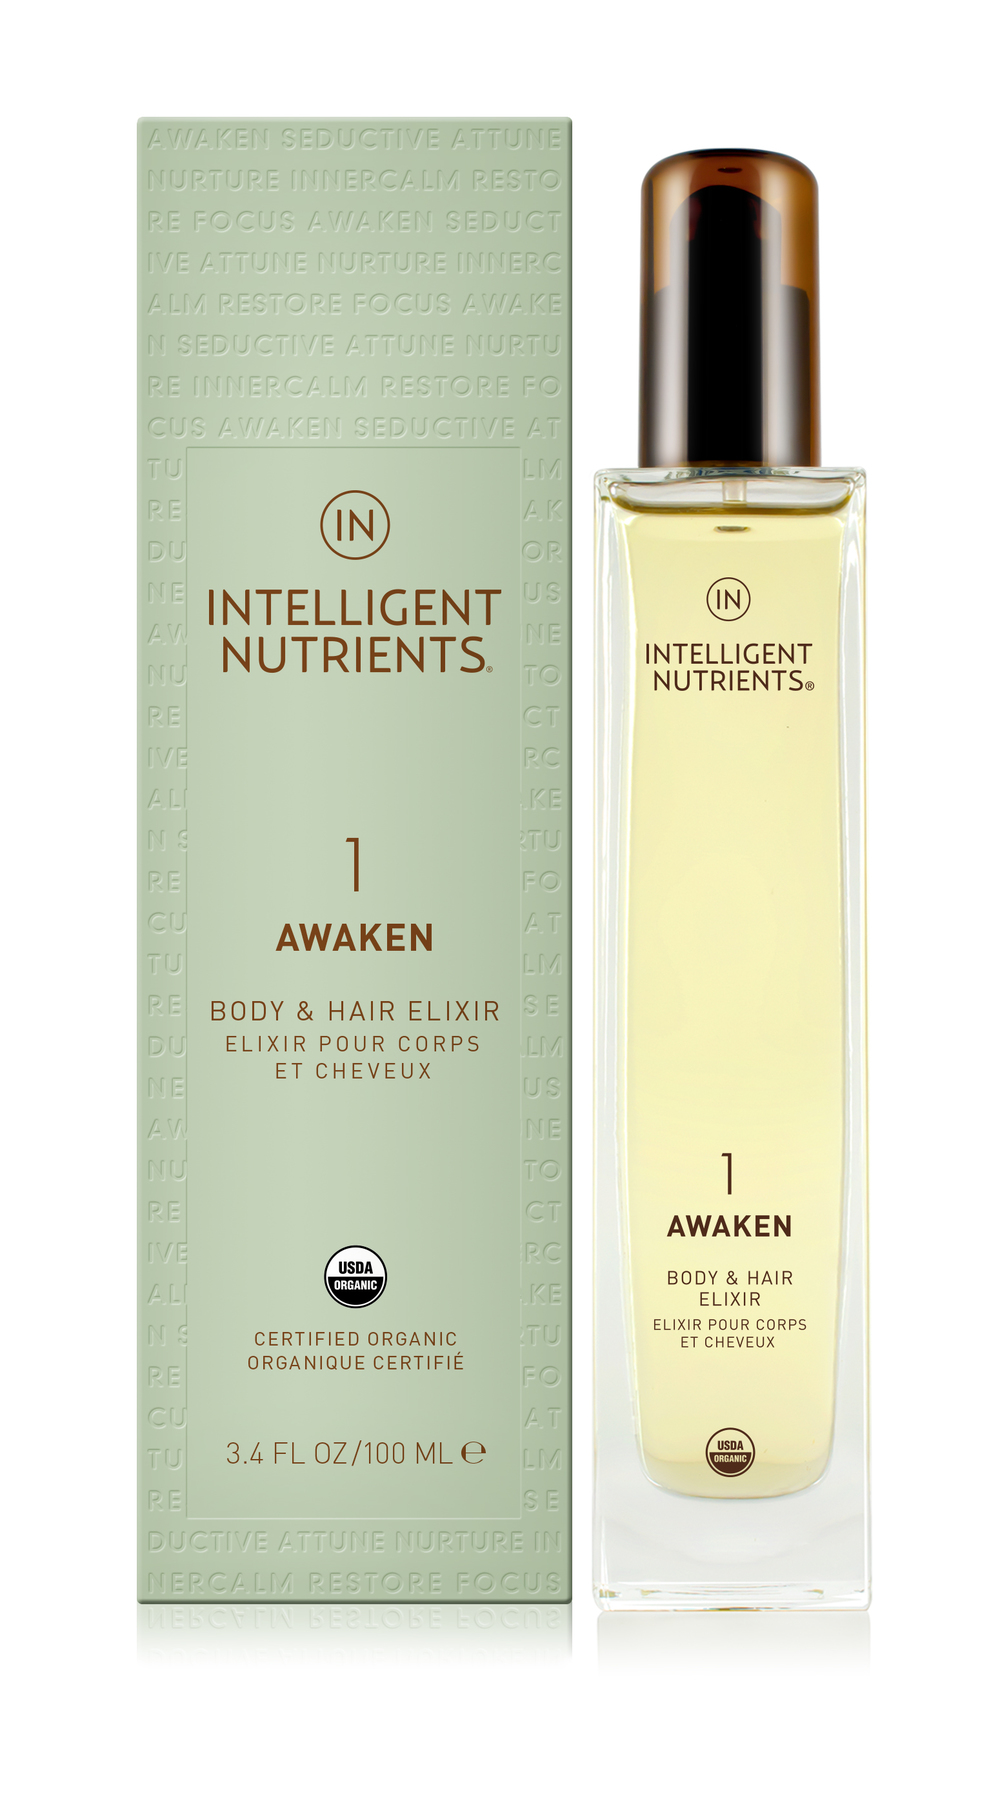 (1) Awaken Body & Hair Elixir (DKK455/100ml)